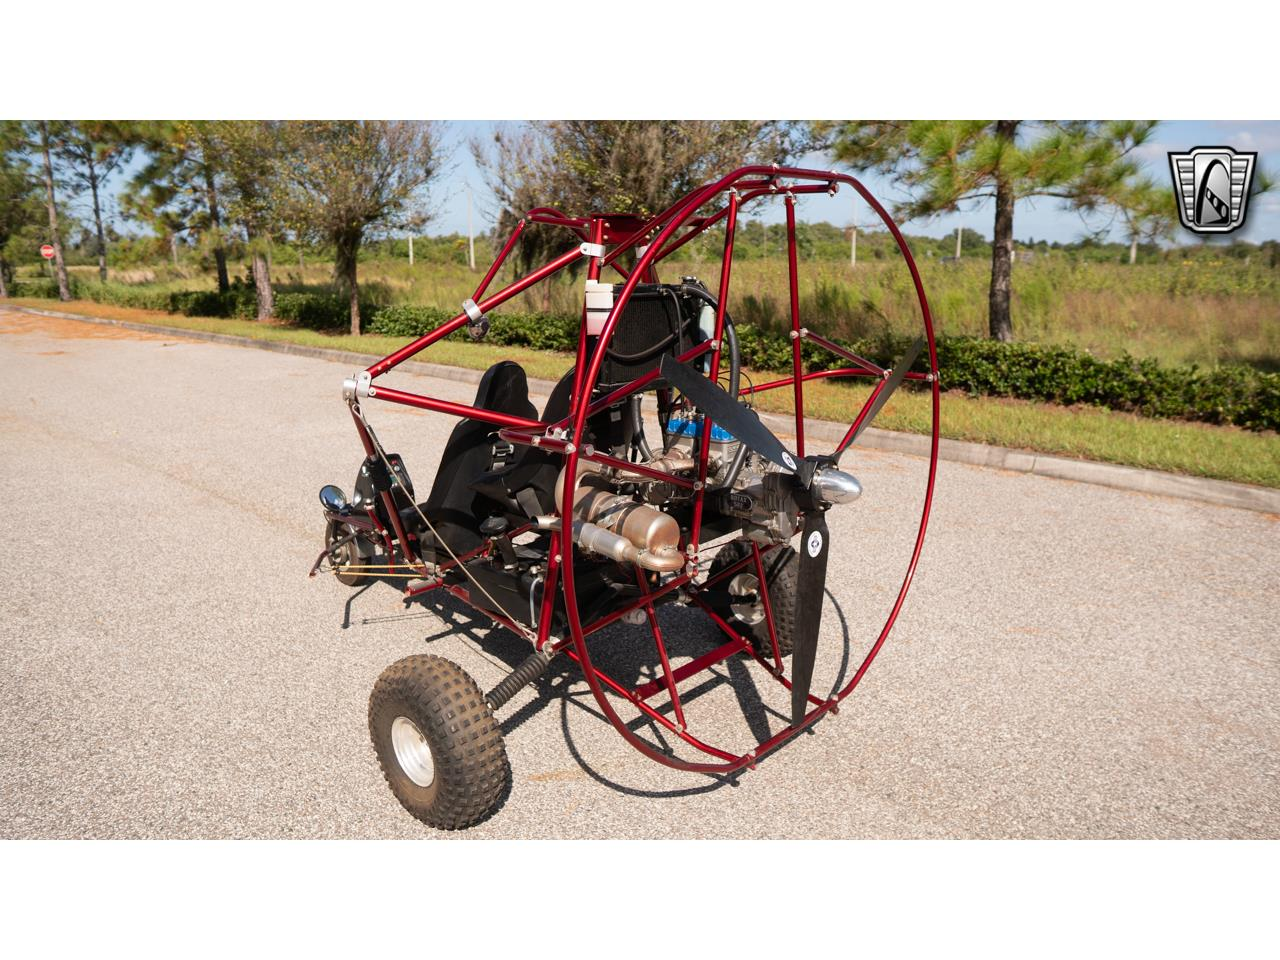 2000 Custom Parachute Car (CC-1353587) for sale in O'Fallon, Illinois